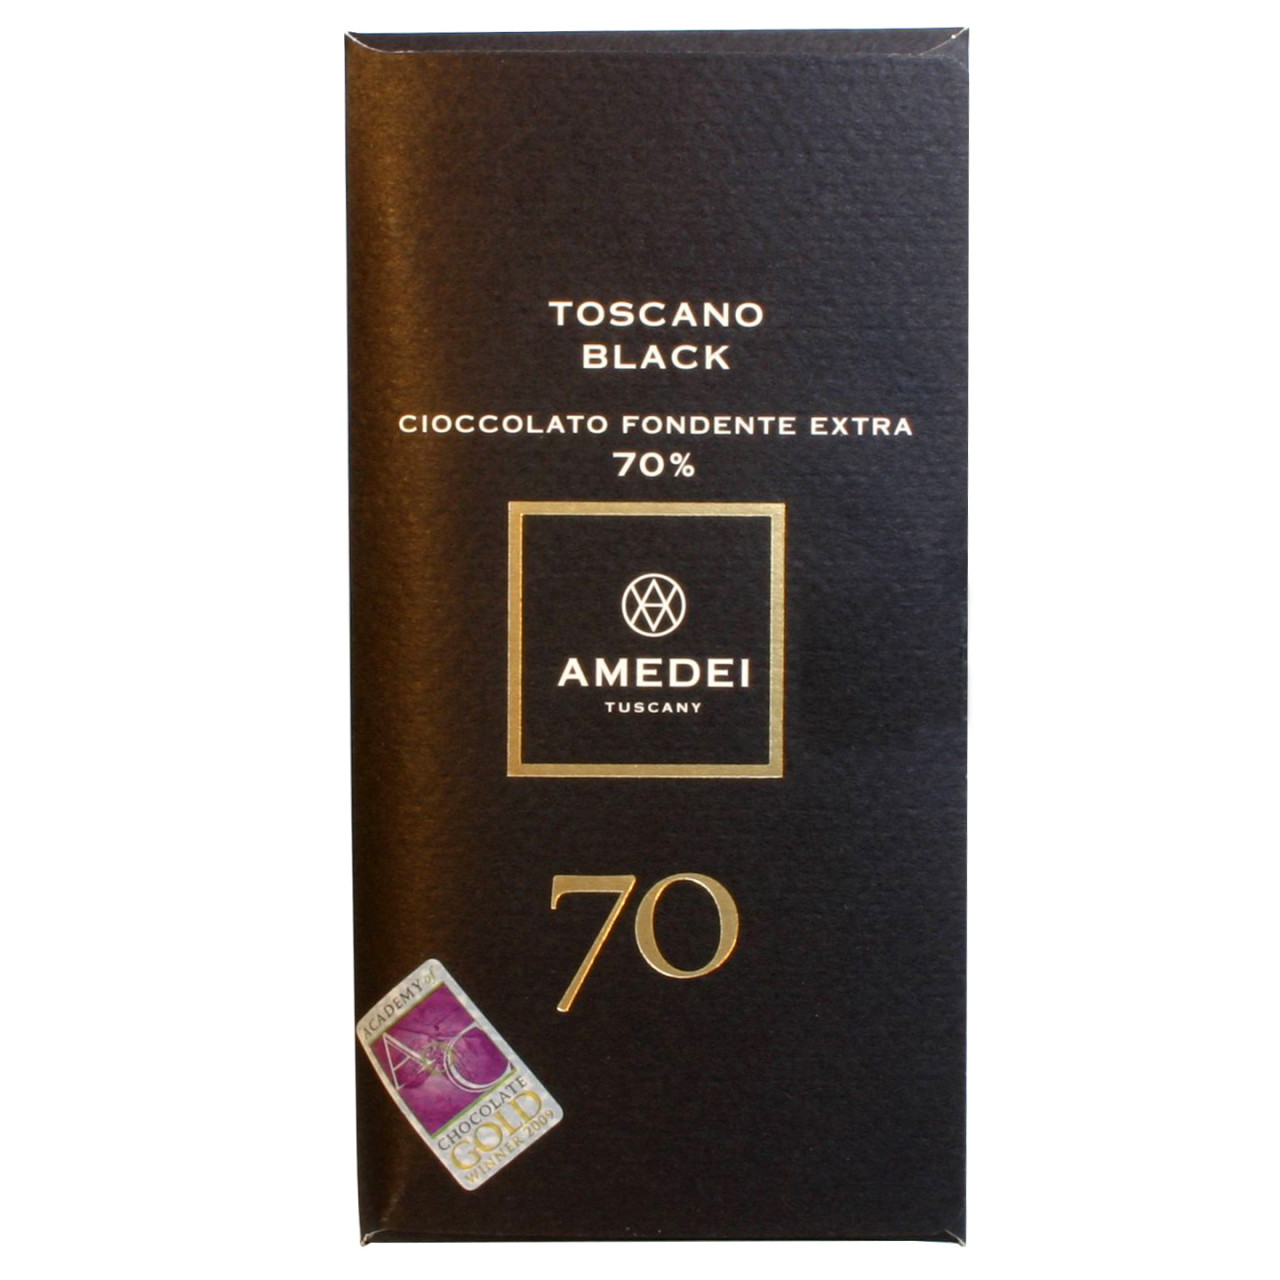 dark chocolate, chocolat noir, Tuscany, Italy, award winning,